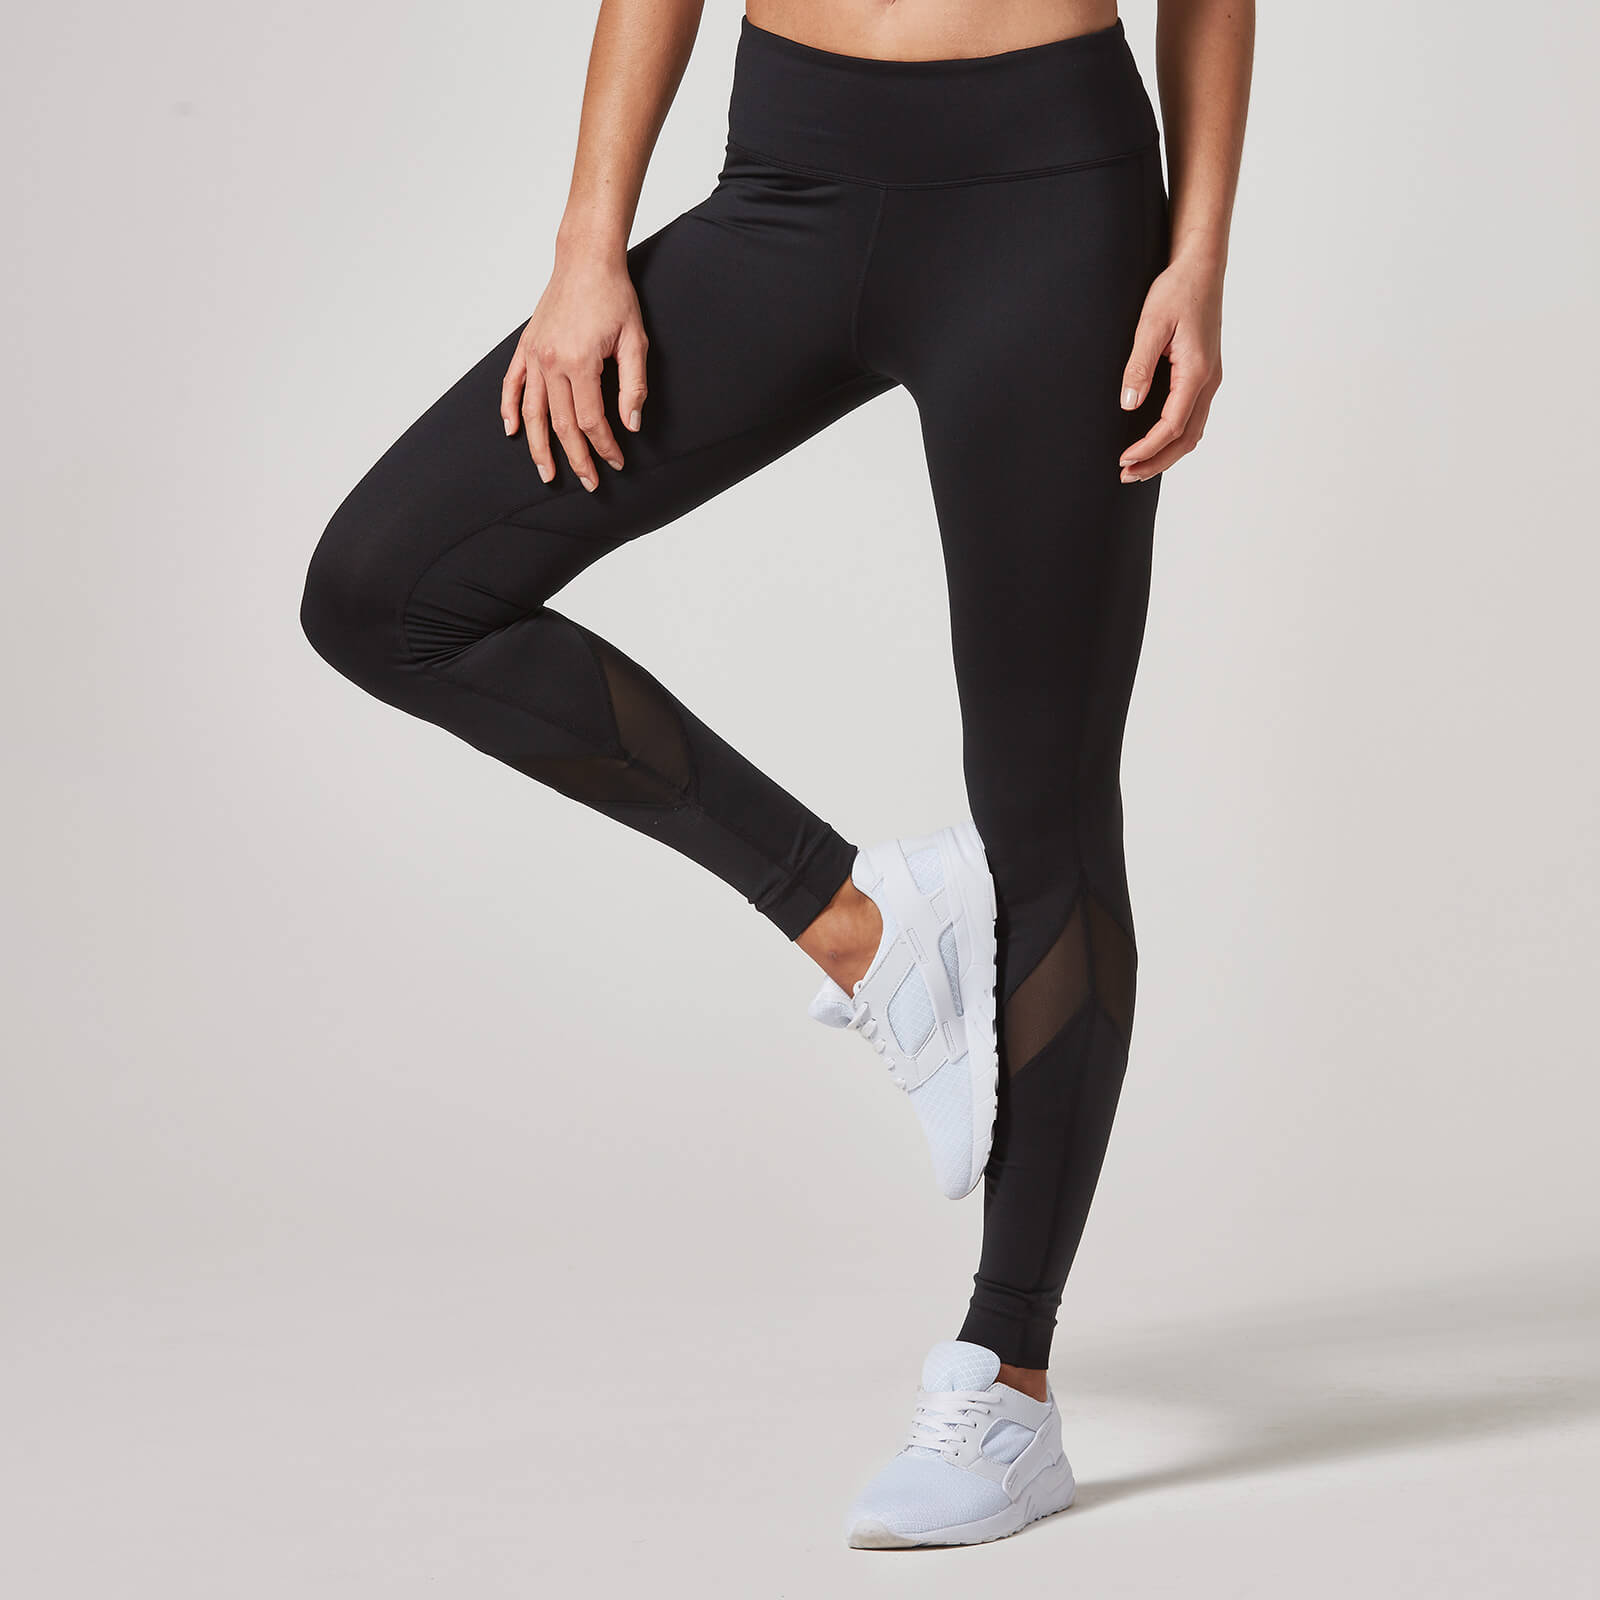 Myprotein Heartbeat Full-Length Leggings - Black, XS